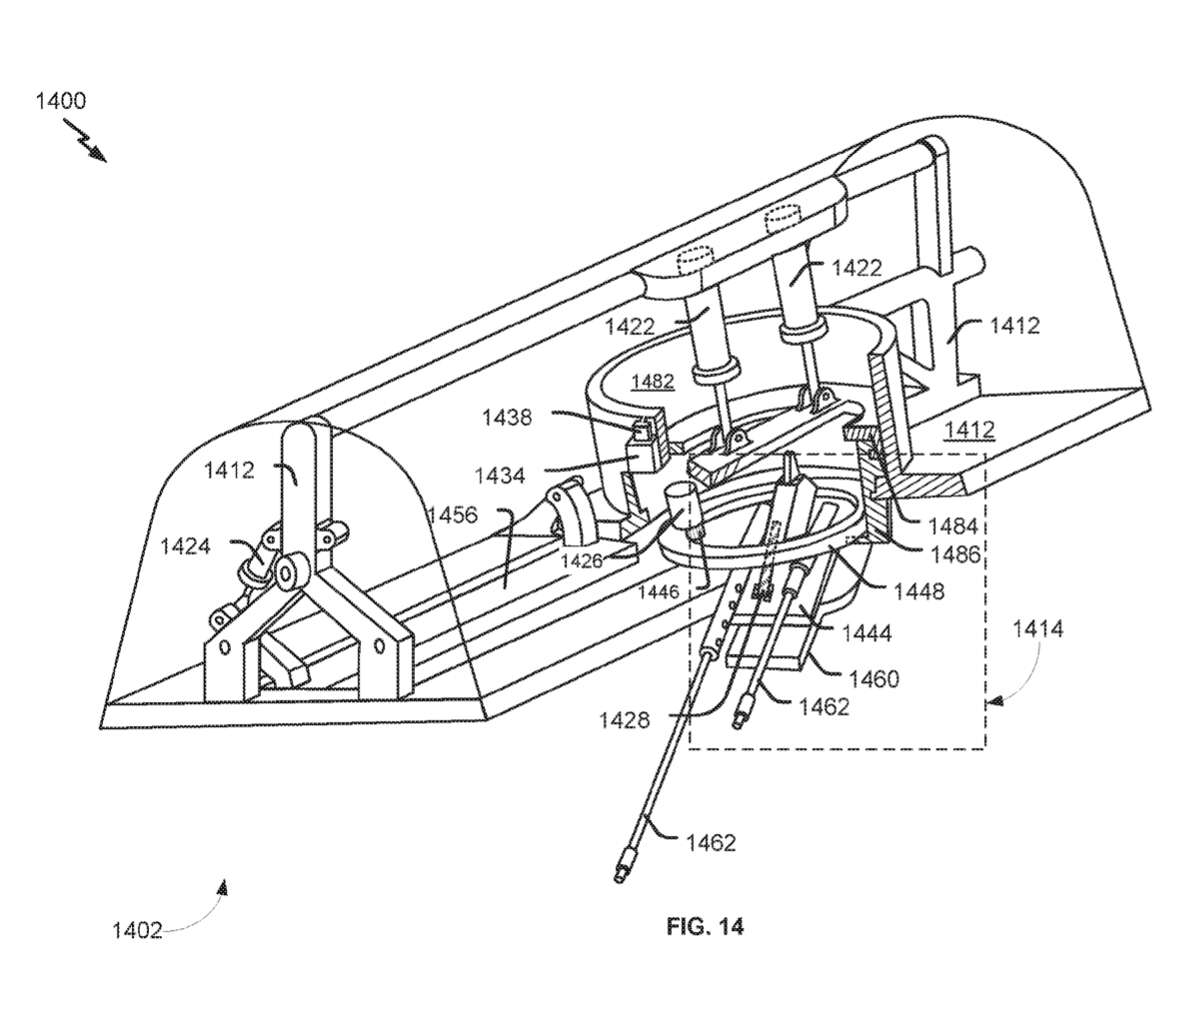 Boeing's Been Granted A Patent For Turning The B-1B Into A Gunship